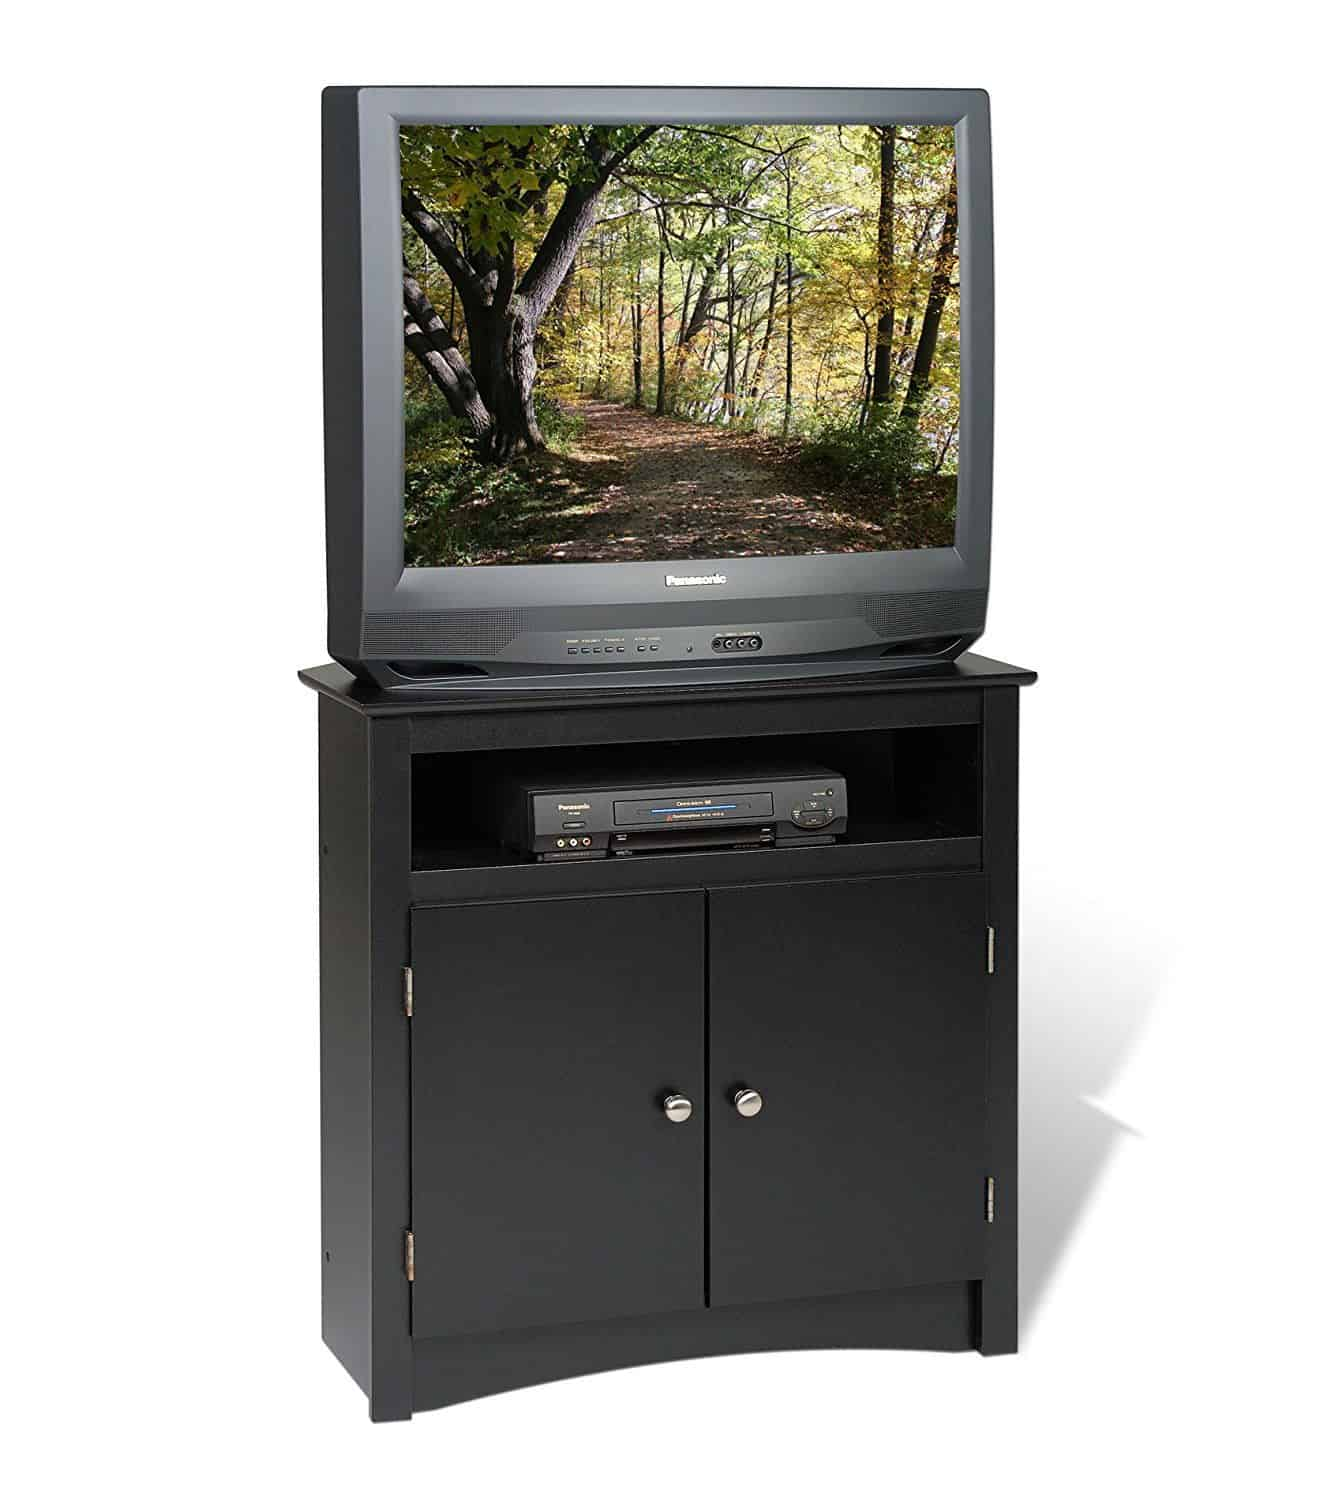 Black corner TV stand with laminated composite wood and storage.